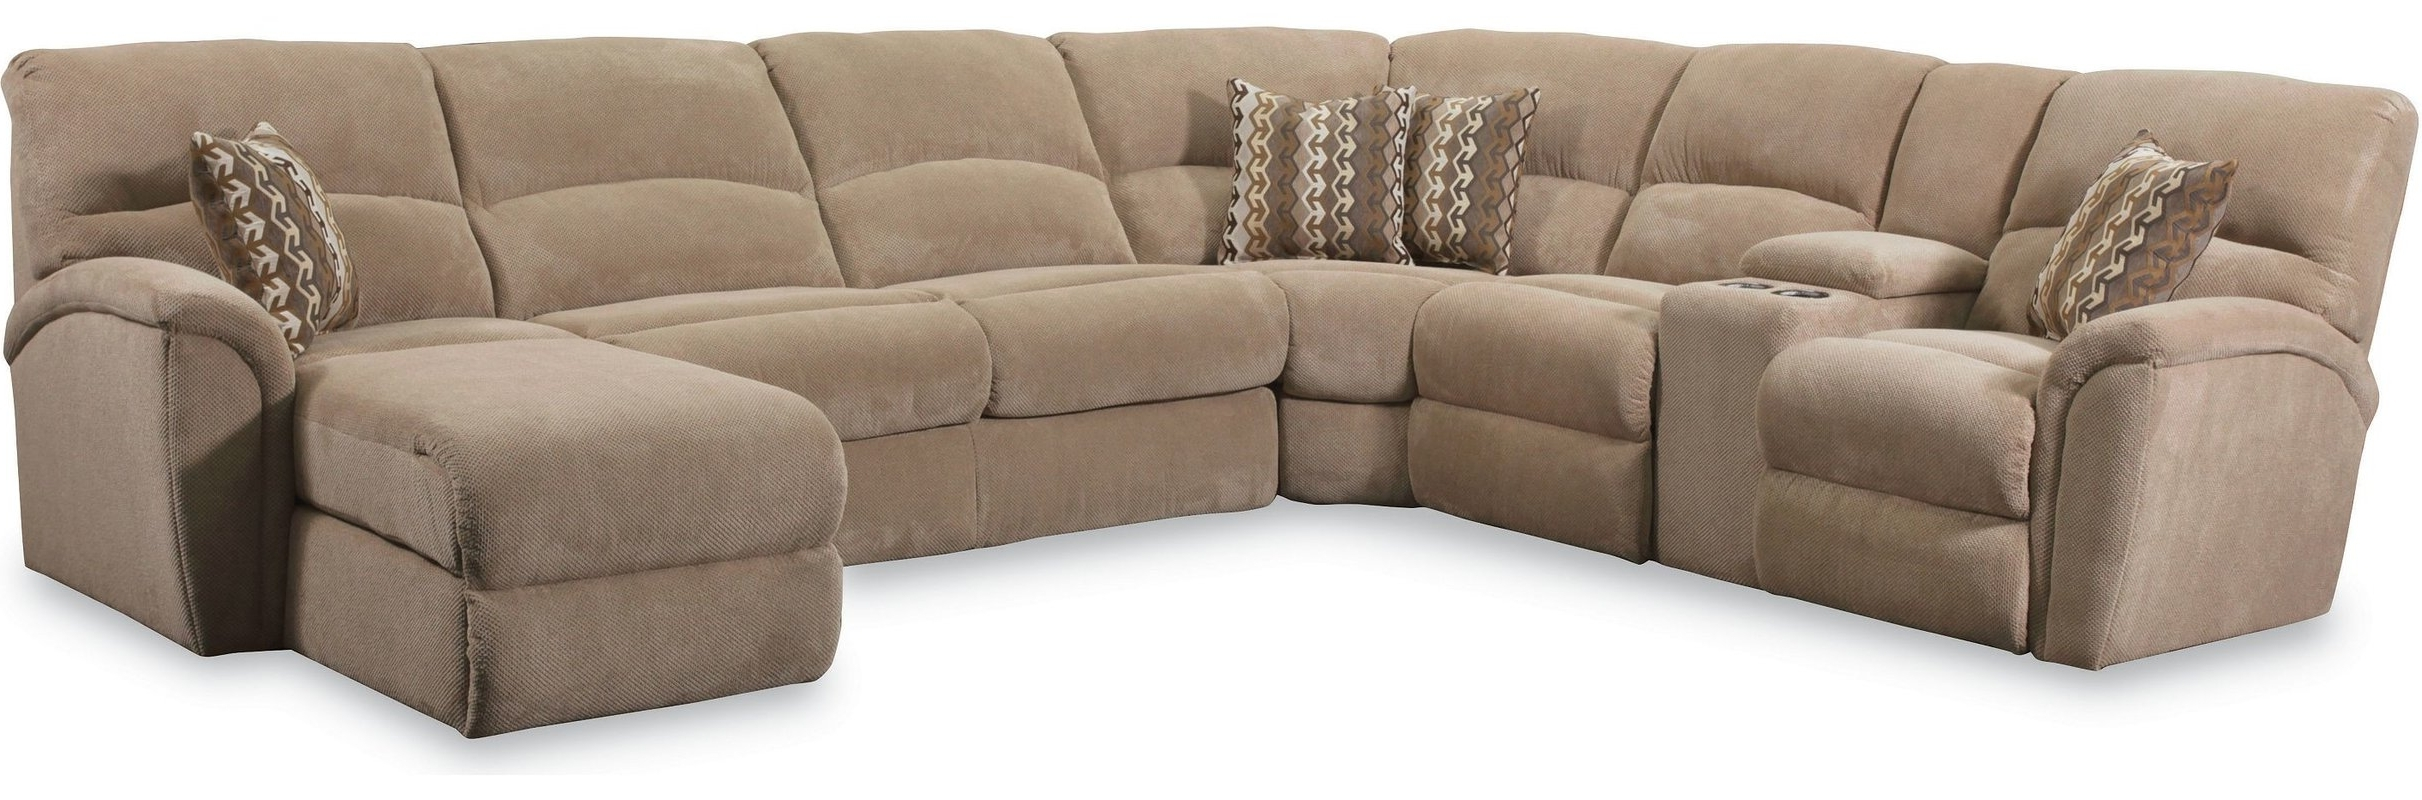 Wayfair Intended For Grand Furniture Sectional Sofas (View 13 of 20)